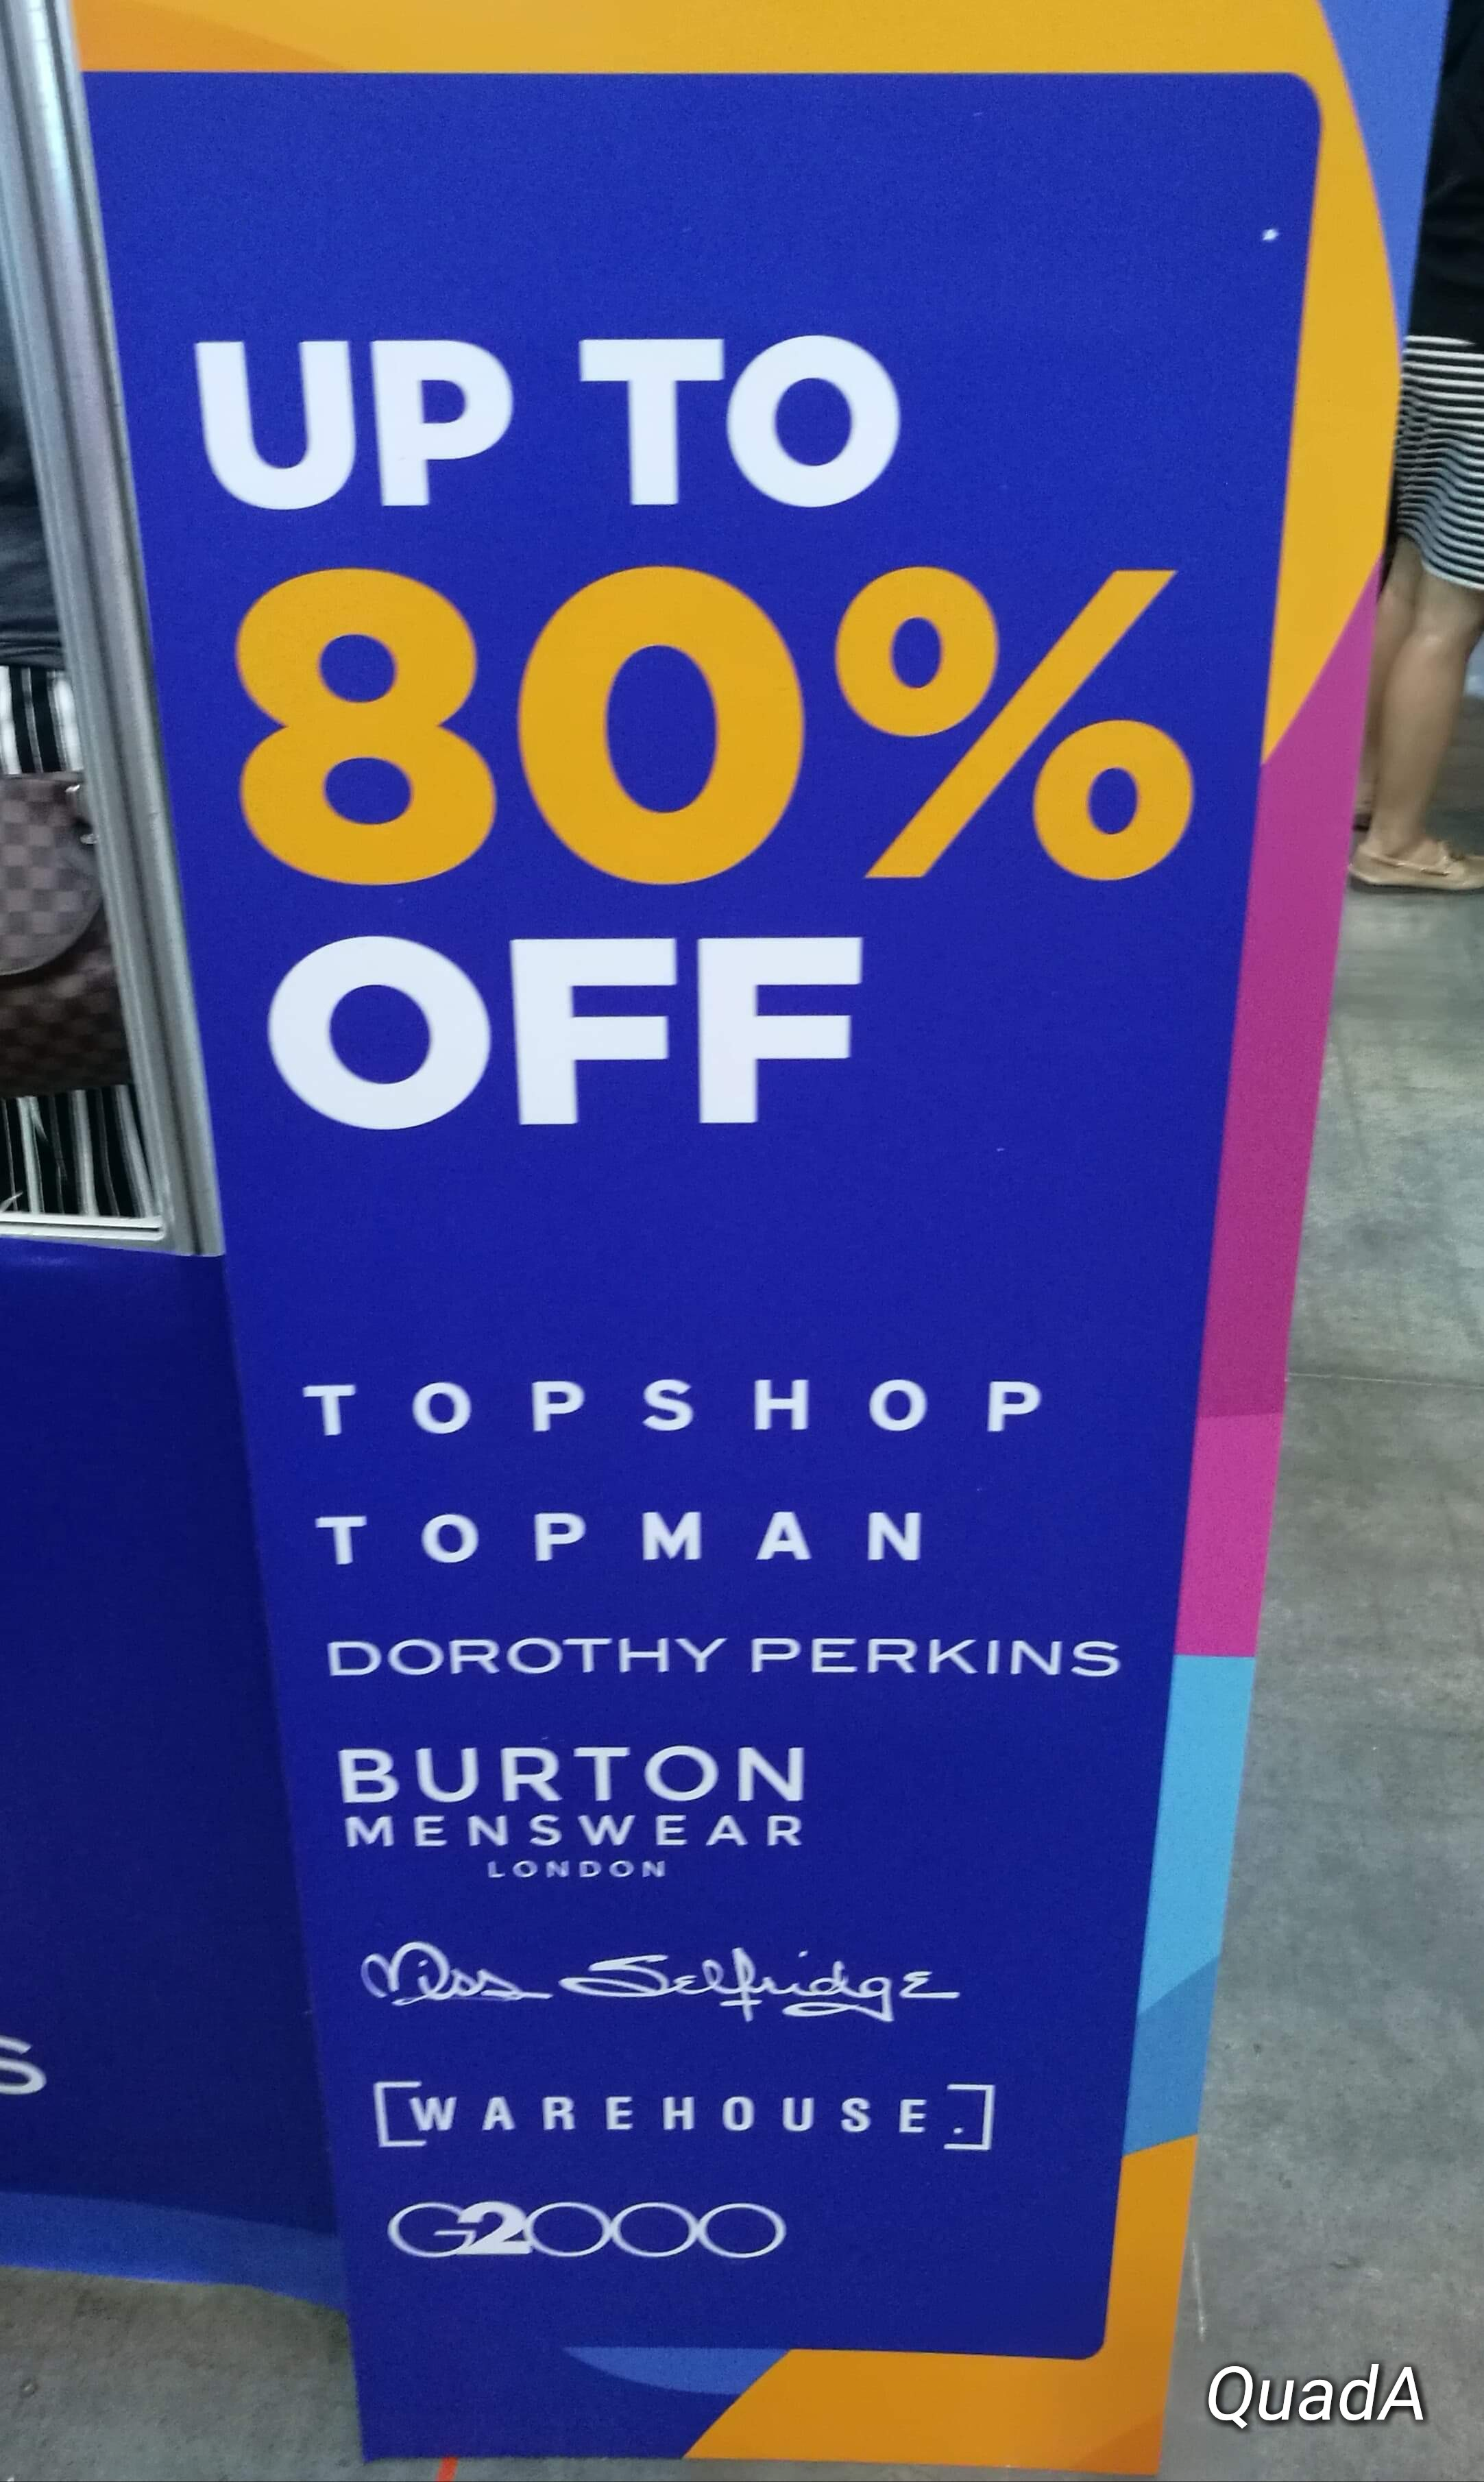 Sale items: Dorthy Perkins,Topshop, TopMan, Burton, etc.